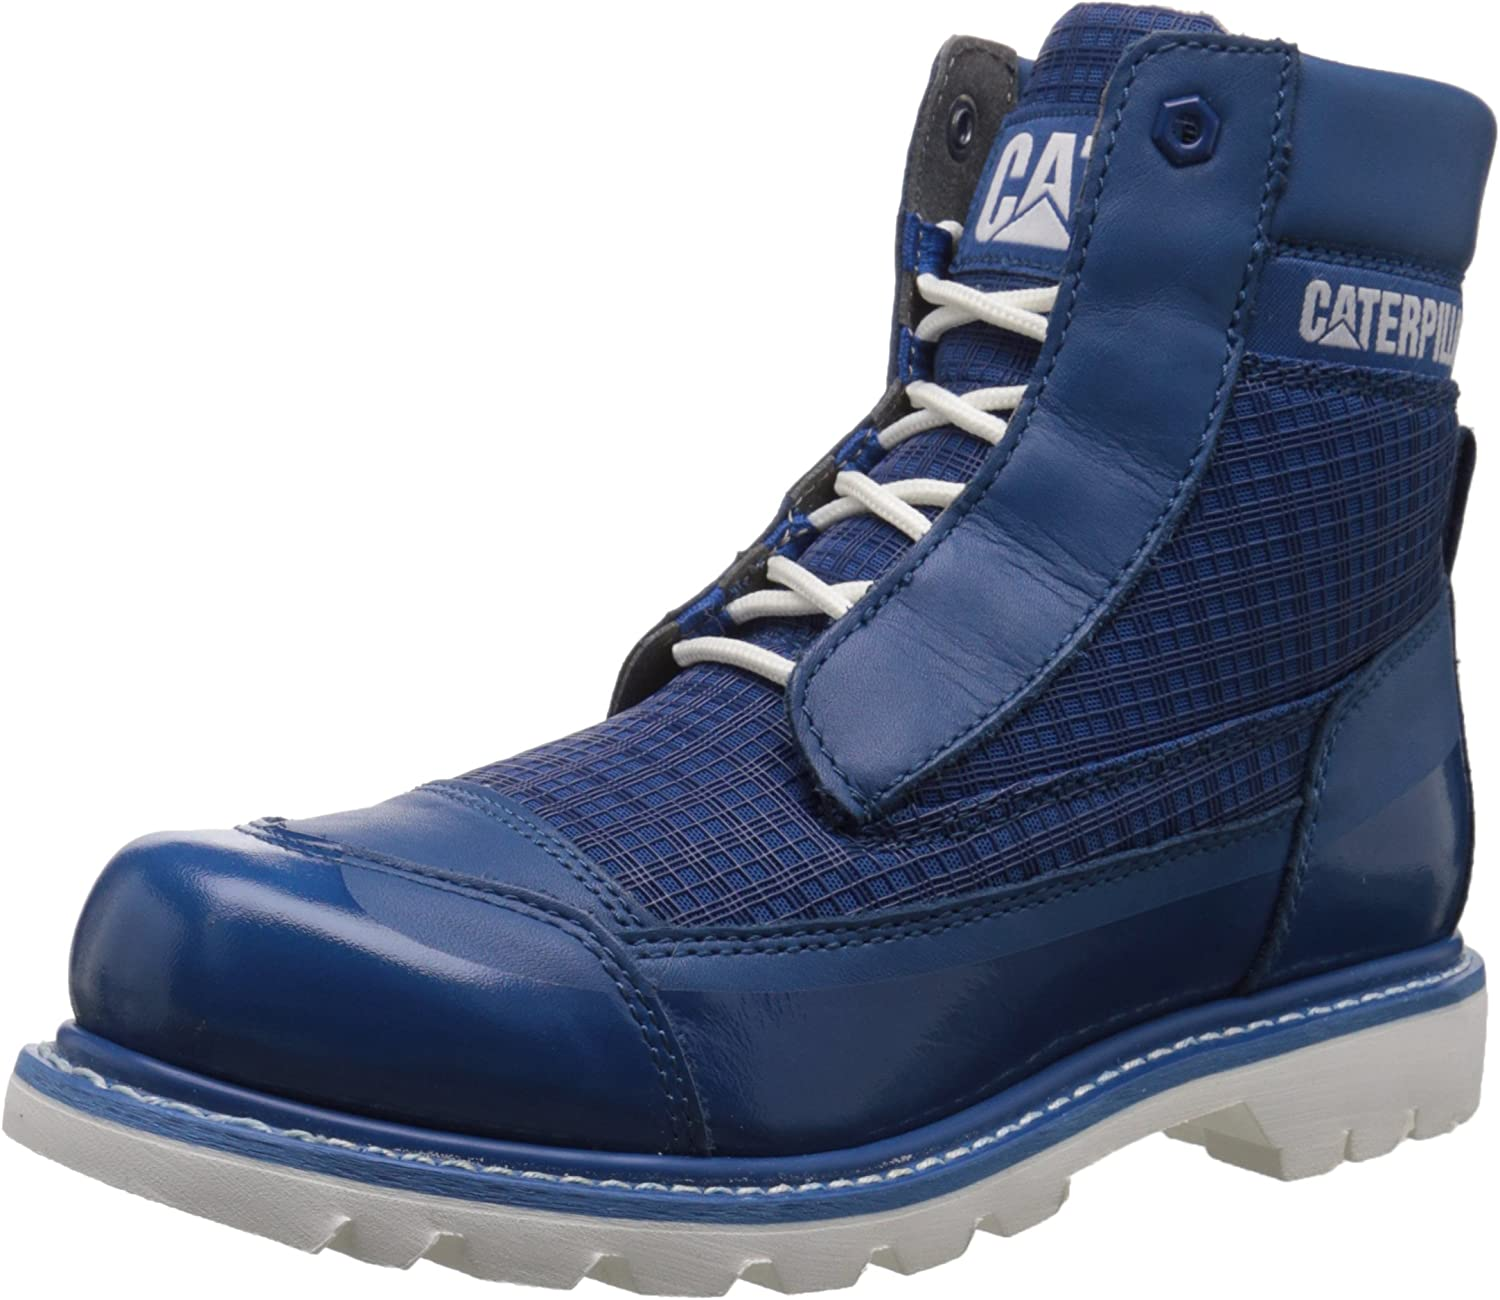 Caterpillar Special Edition Weldon Mens Ankle Boots